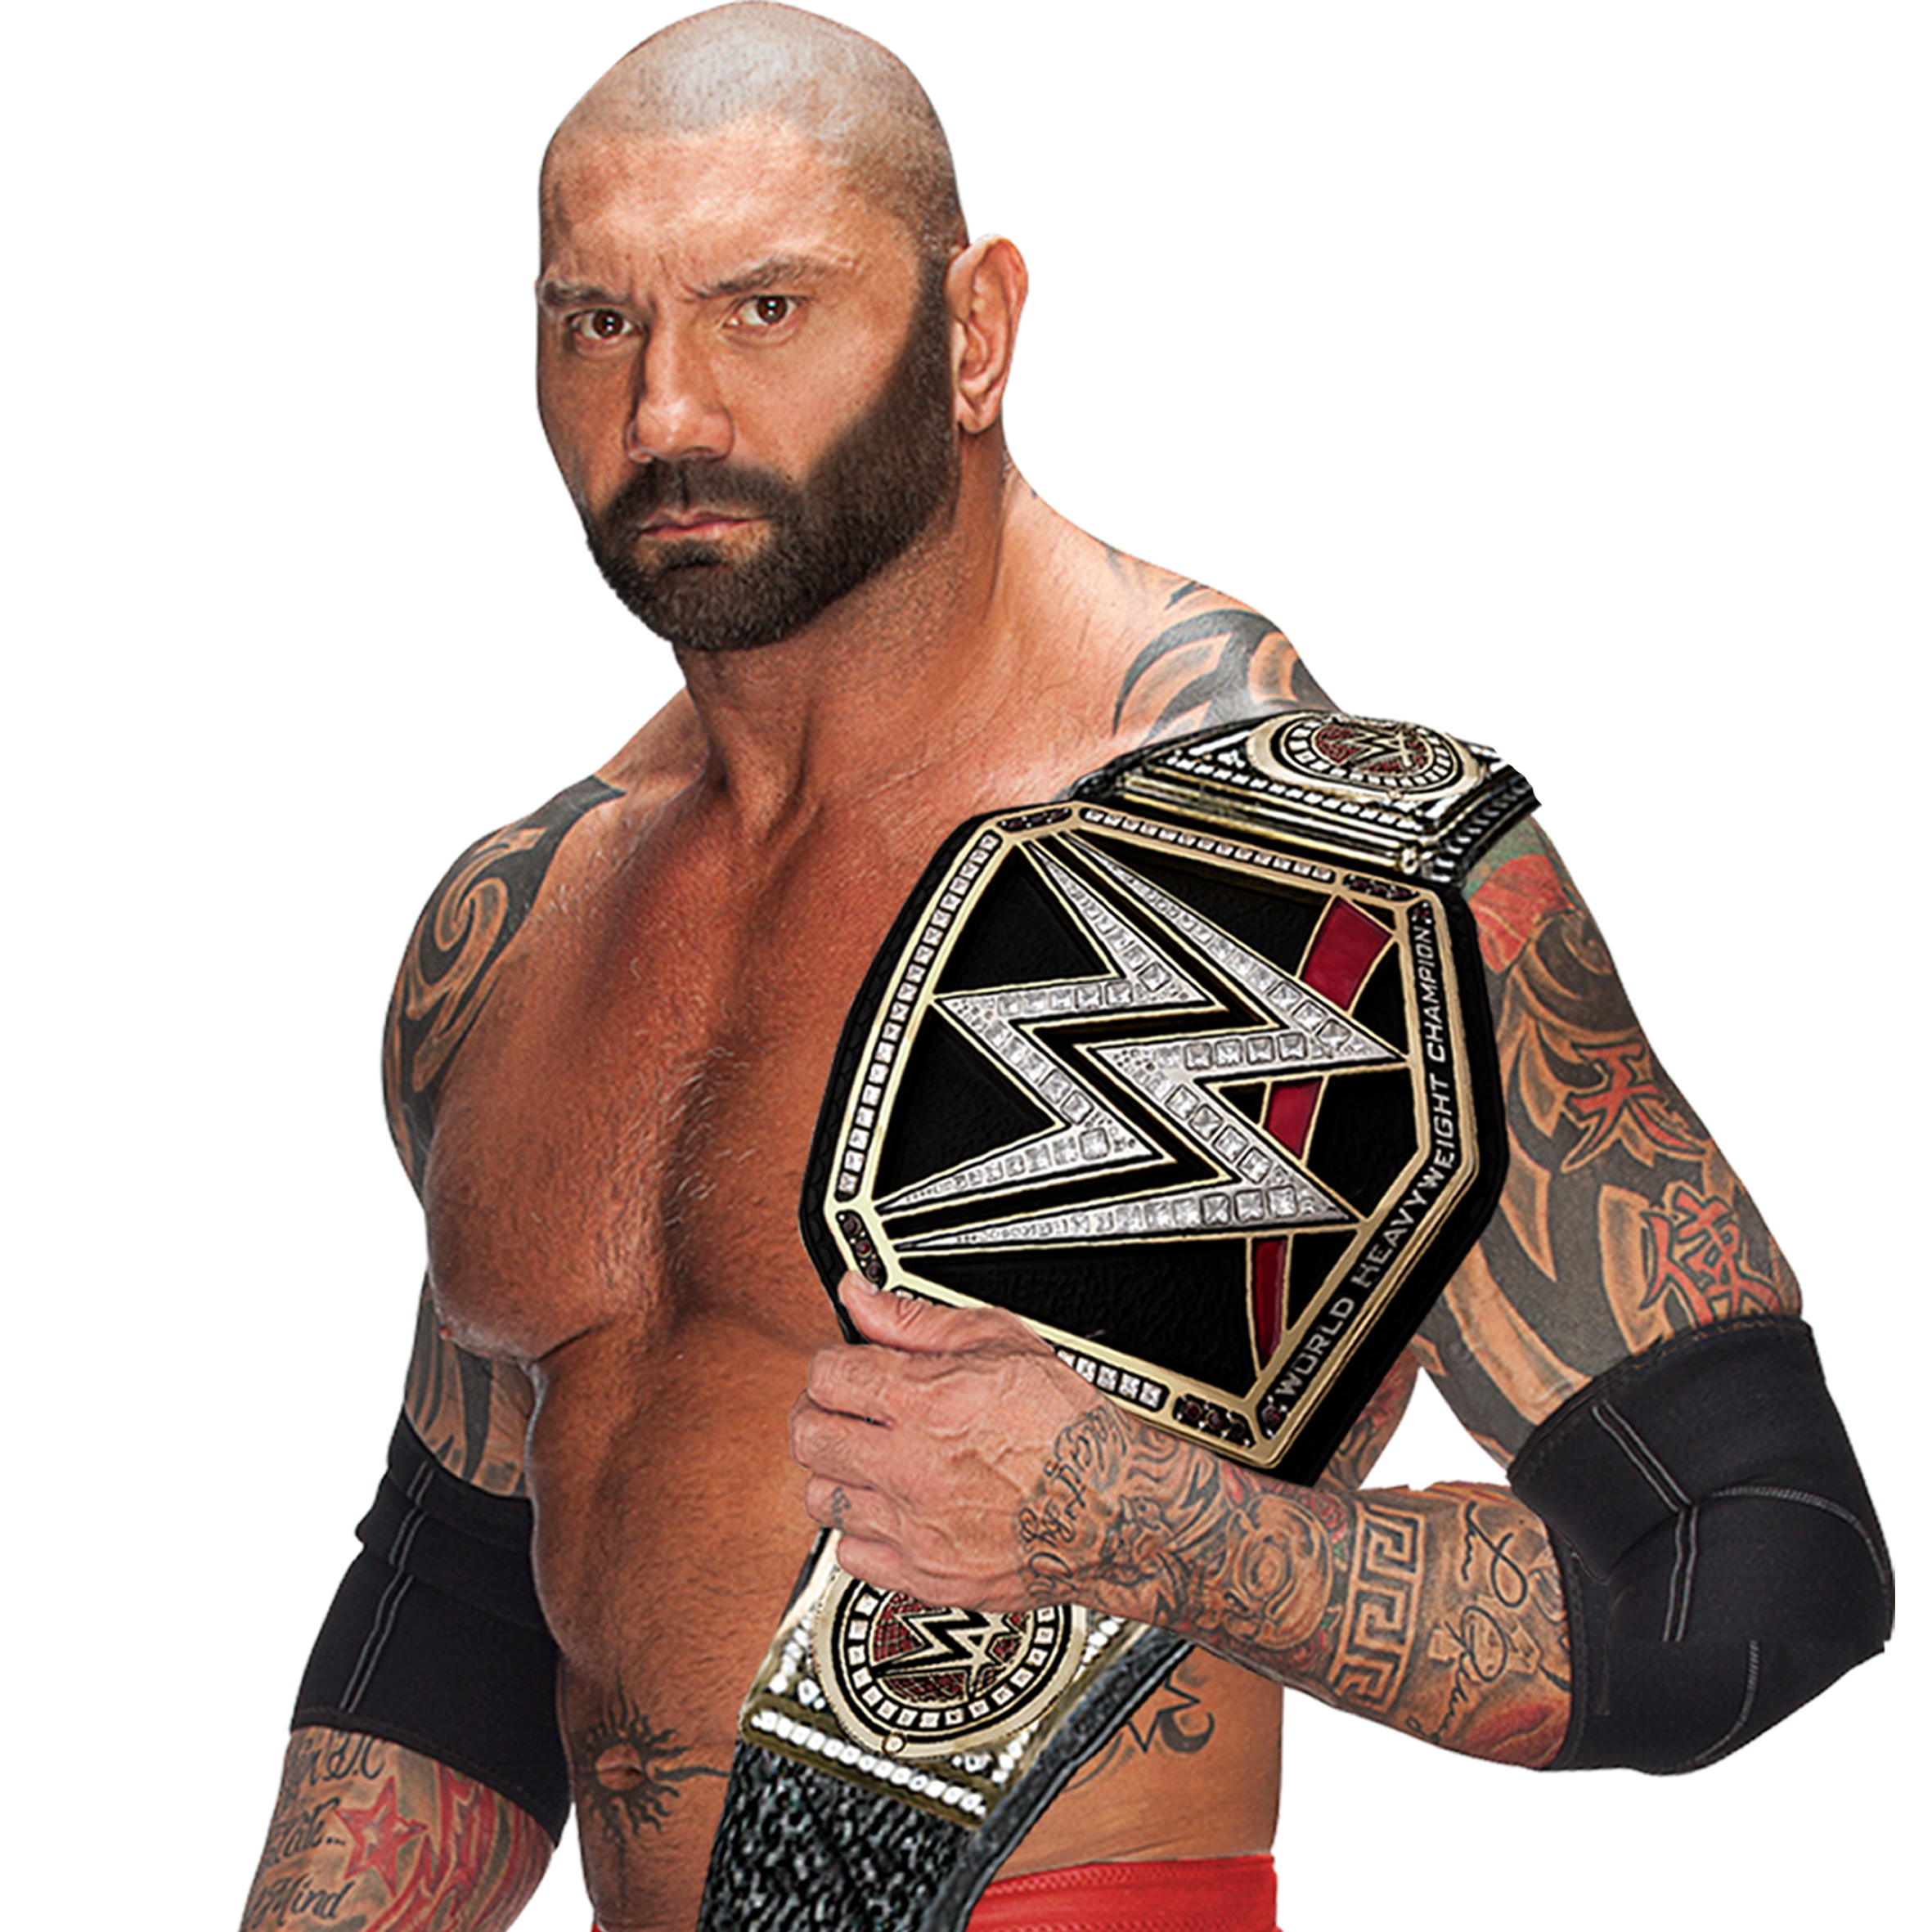 Batista WWE World Heavyweight Championship By Islam Batista22 On 2362x2362